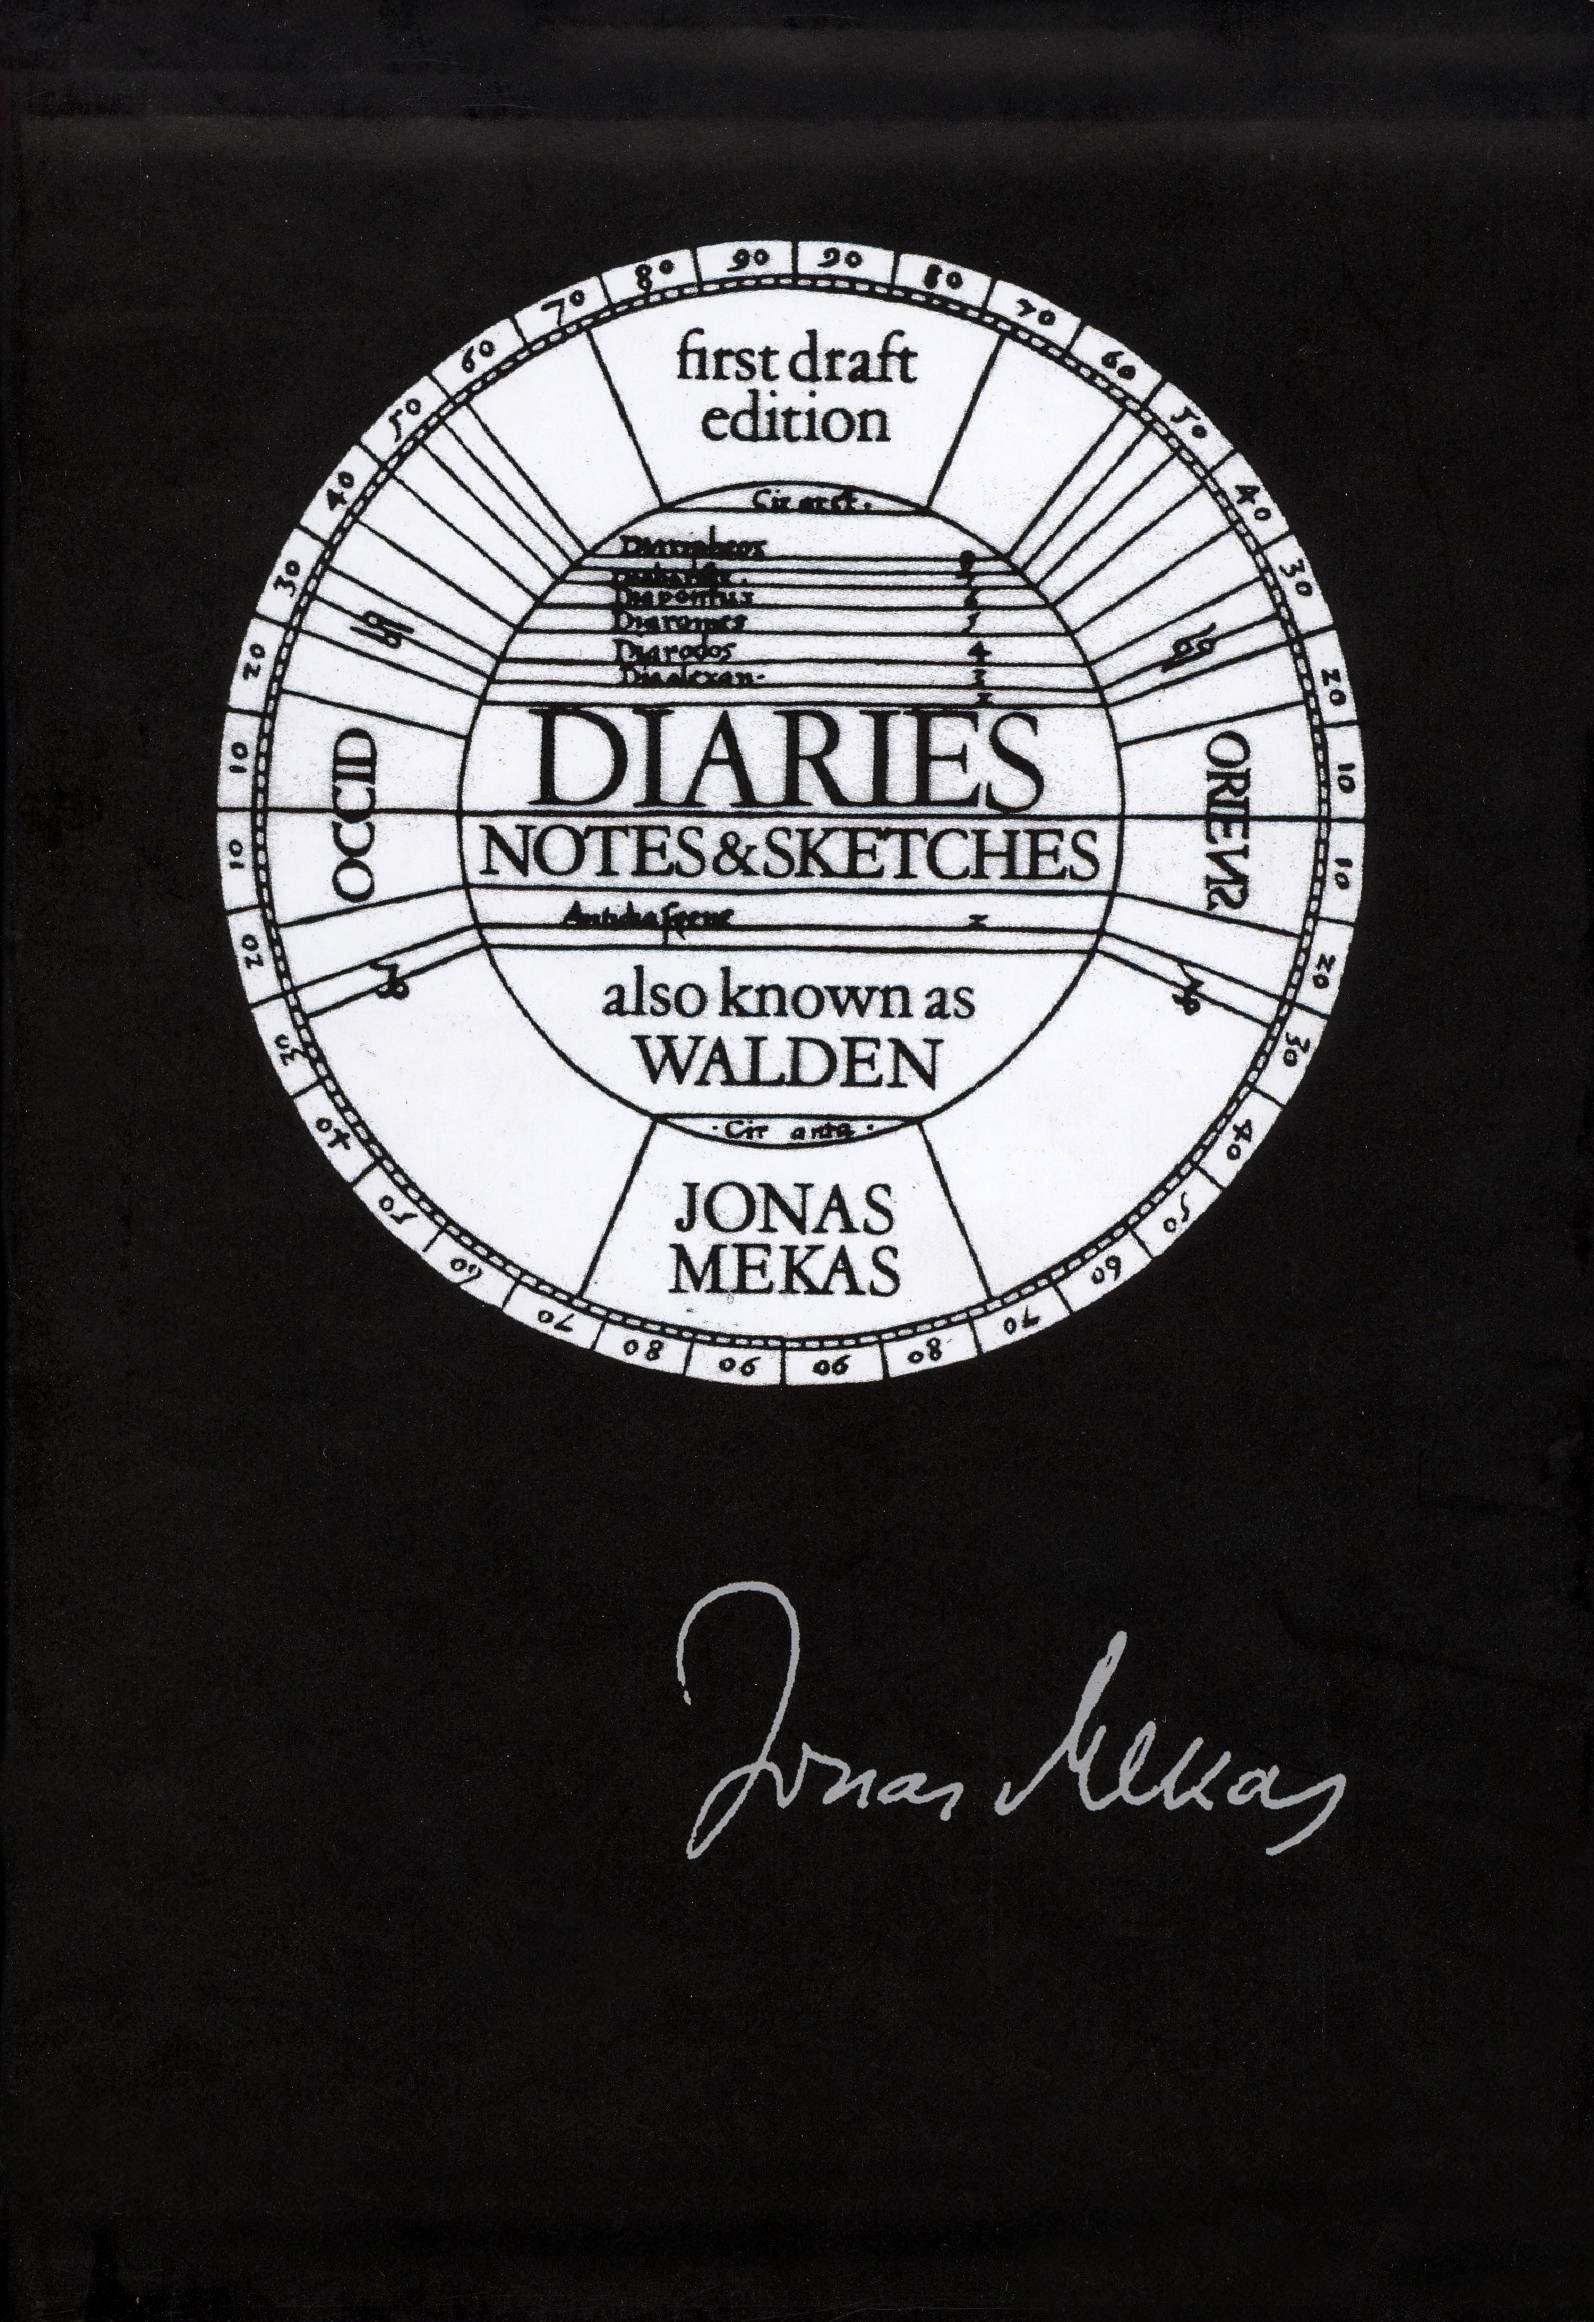 Diaries, Notes and Sketches